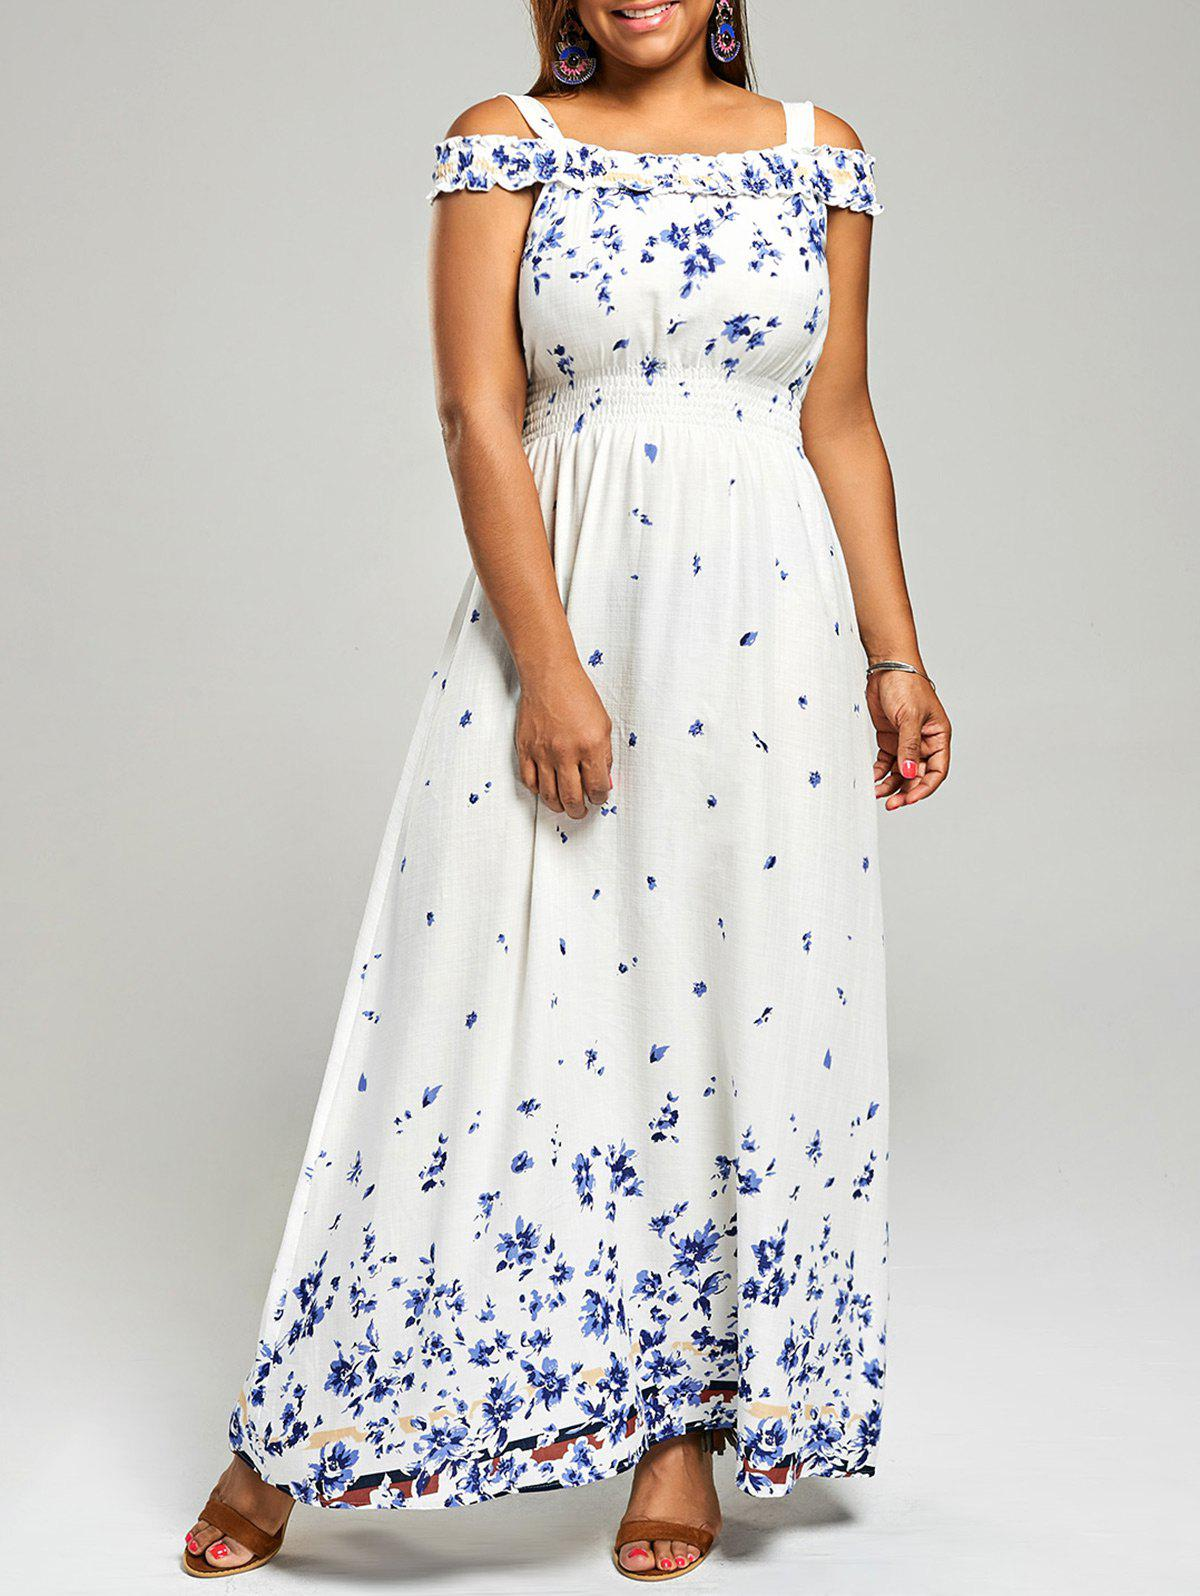 Cold Shoulder Plus Size Long Floral DressWOMEN<br><br>Size: 3XL; Color: WHITE; Style: Casual; Material: Rayon; Silhouette: A-Line; Dresses Length: Floor-Length; Neckline: Square Collar; Sleeve Type: Cold Shoulder; Sleeve Length: Short Sleeves; Waist: Empire; Pattern Type: Floral; With Belt: No; Season: Fall,Spring,Summer; Weight: 0.2700kg; Package Contents: 1 x Dress;